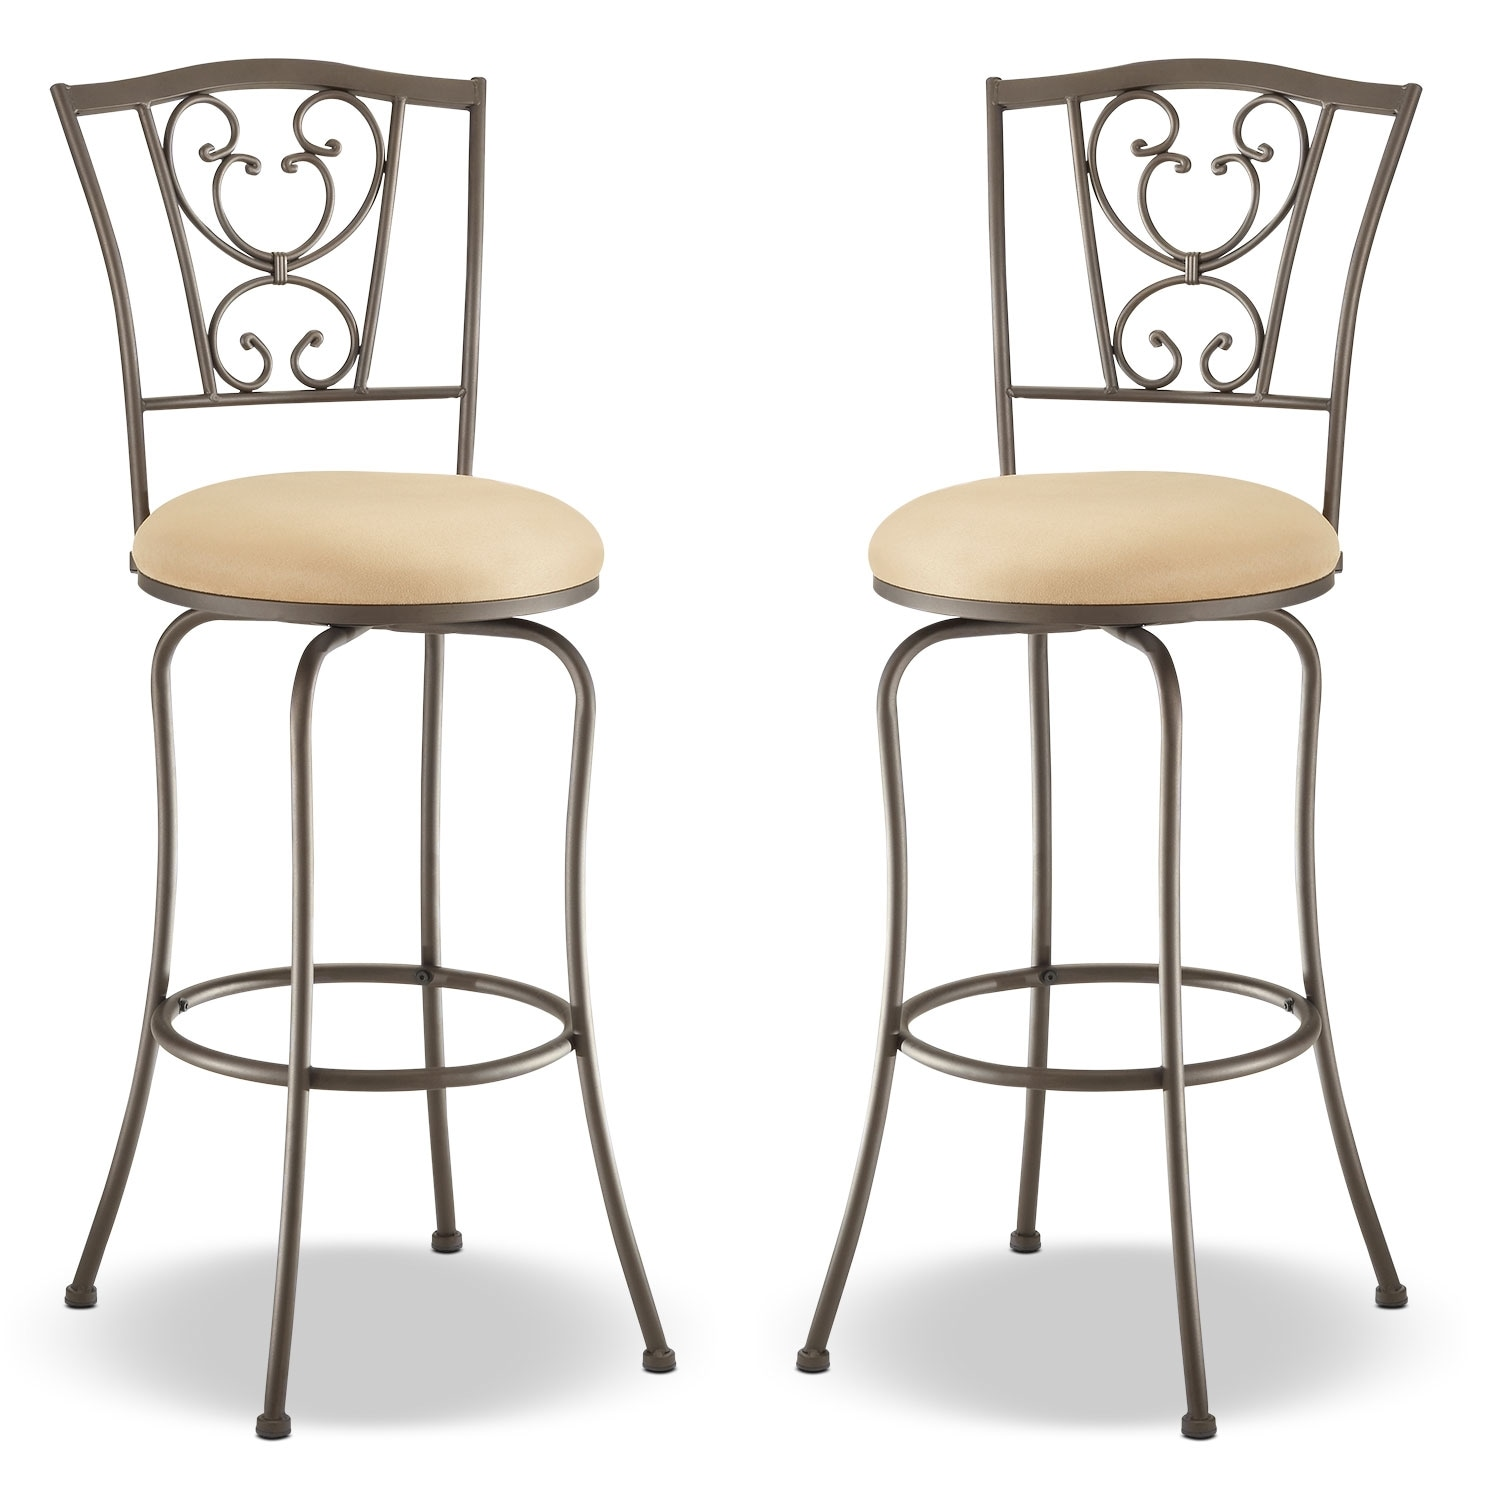 Concord Counter-Height Swivel Stool – Set of 2